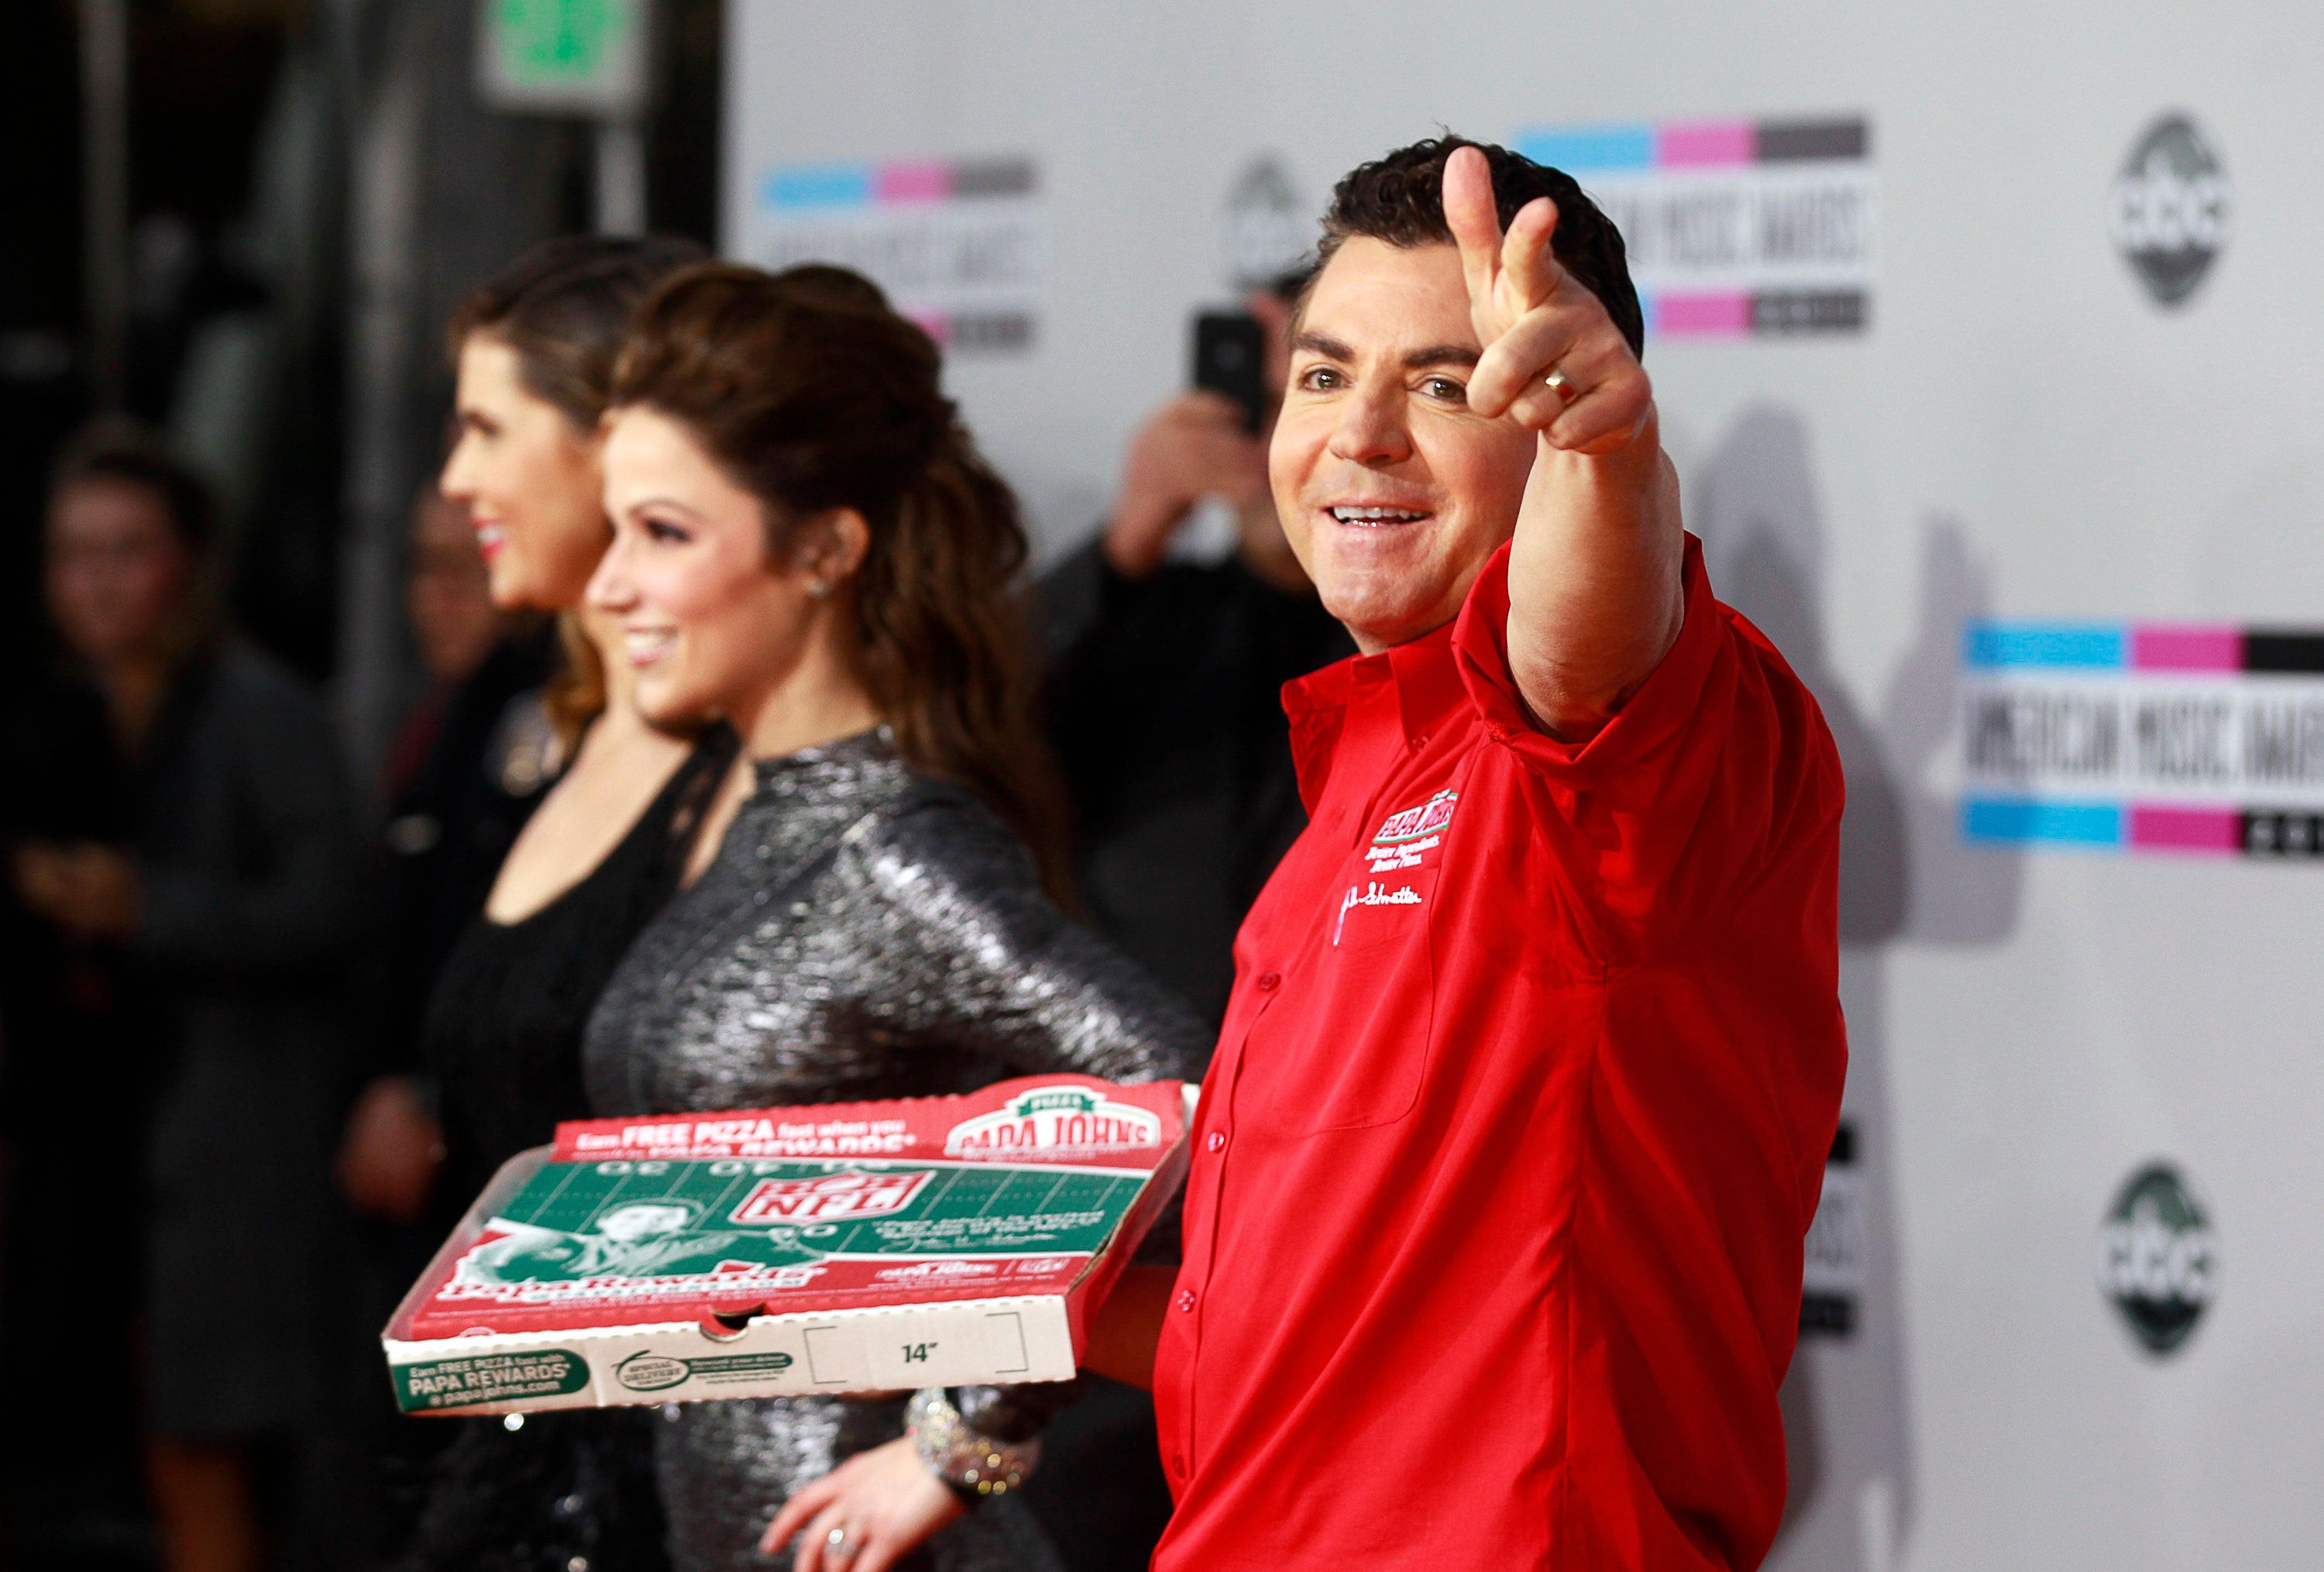 John Schnatter, founder and chief executive of Papa John's Pizza, waves goodbye.